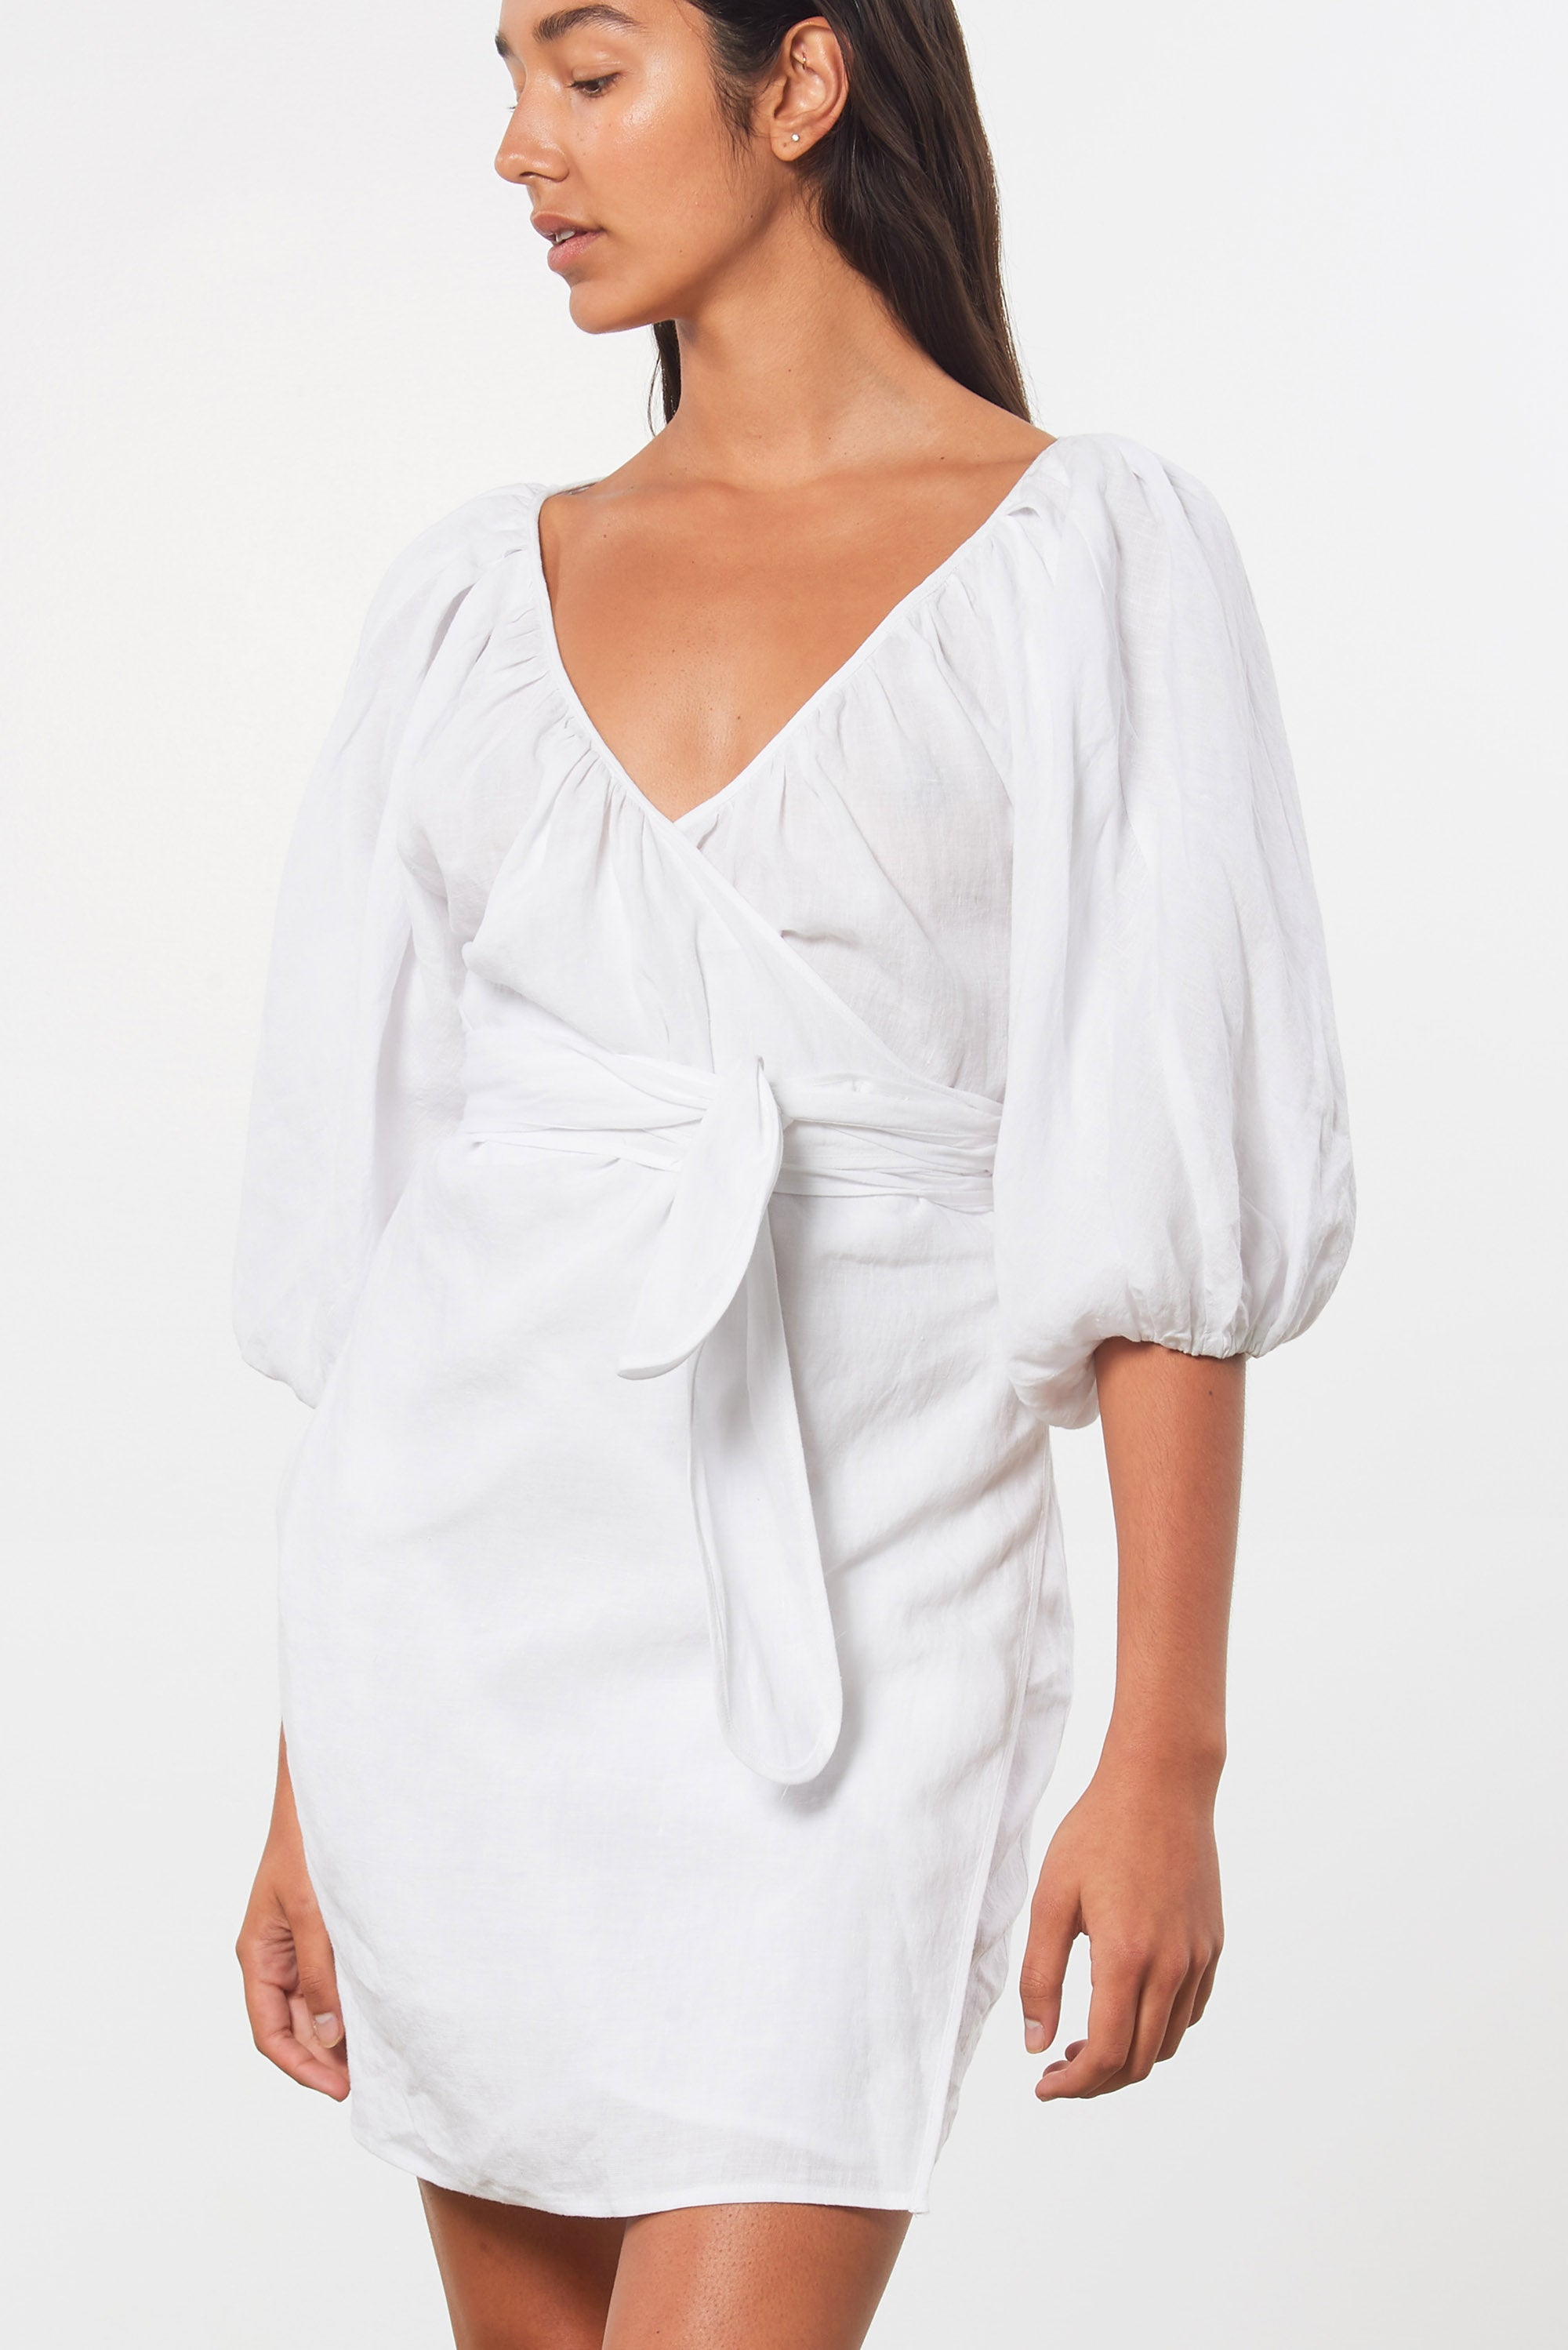 Mara Hoffman White Coletta Cover Up Dress in linen (front detail)